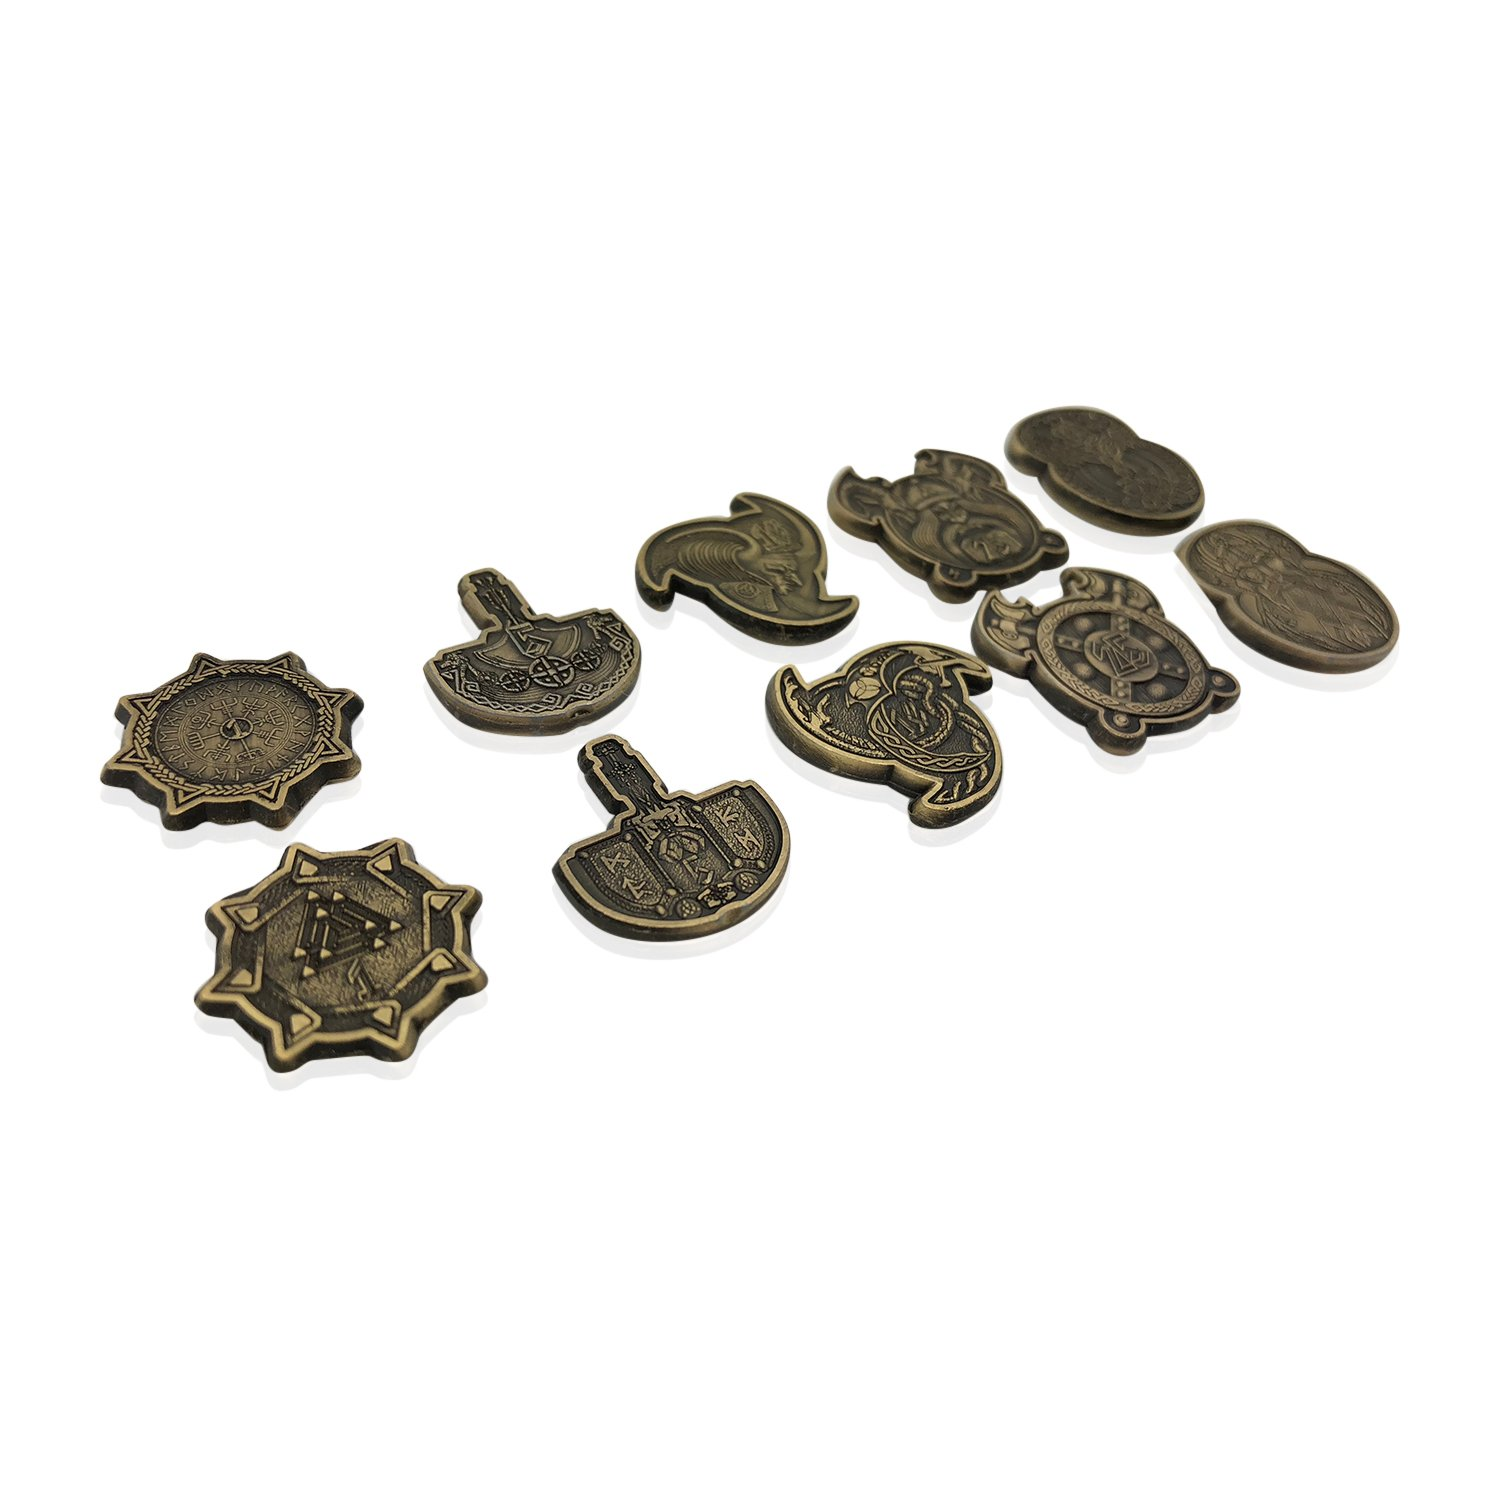 Vikings Norse Variety Pack (Set of 10) (Metal plated novelty) Adventure Coins For RPGs/LARP   DnD Pathfinder Live Action Role-playing Games